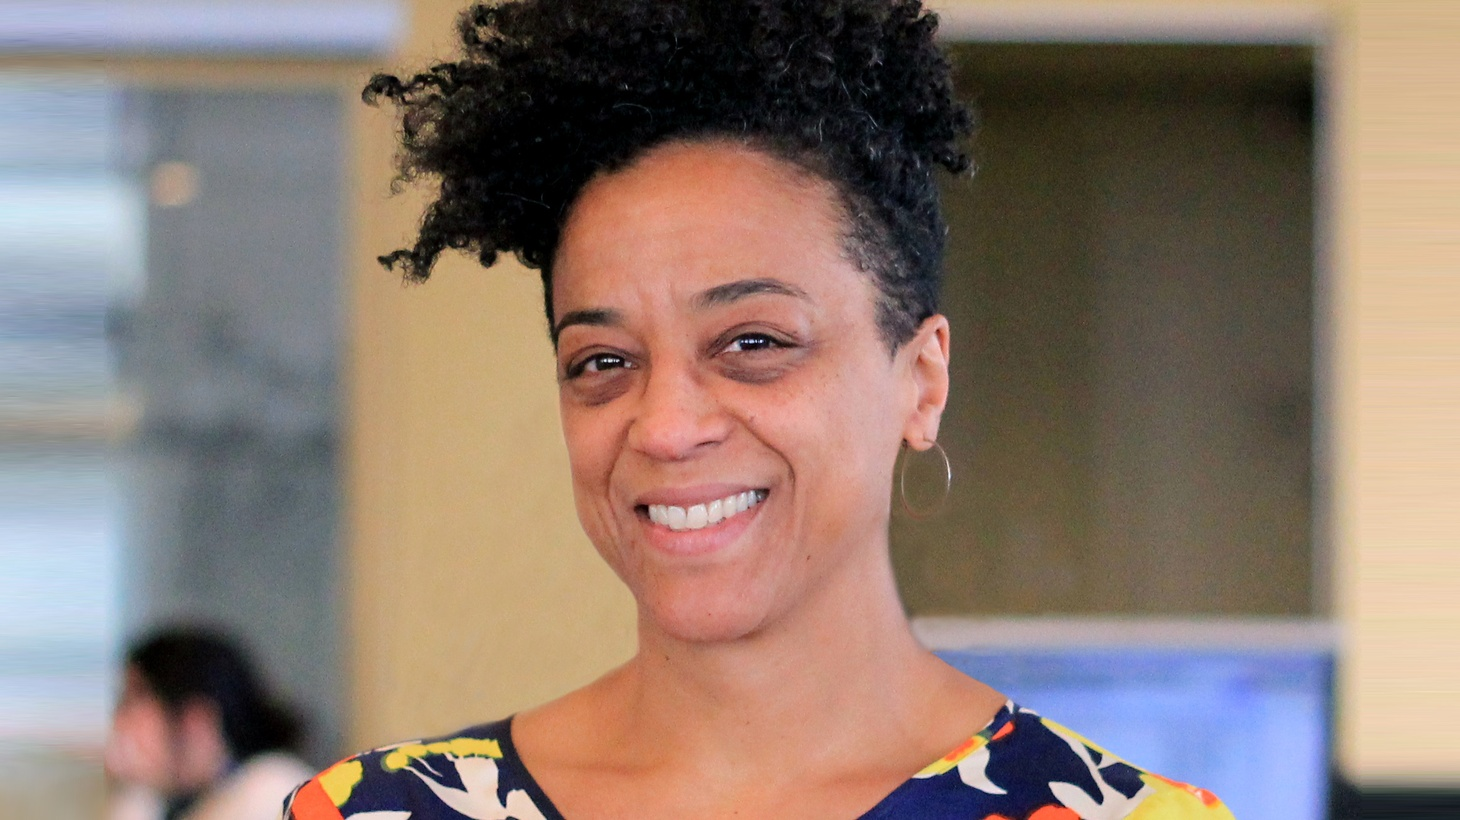 The columnist and author discusses how writing has been integral to her life after growing up as a black girl adopted by a white family.